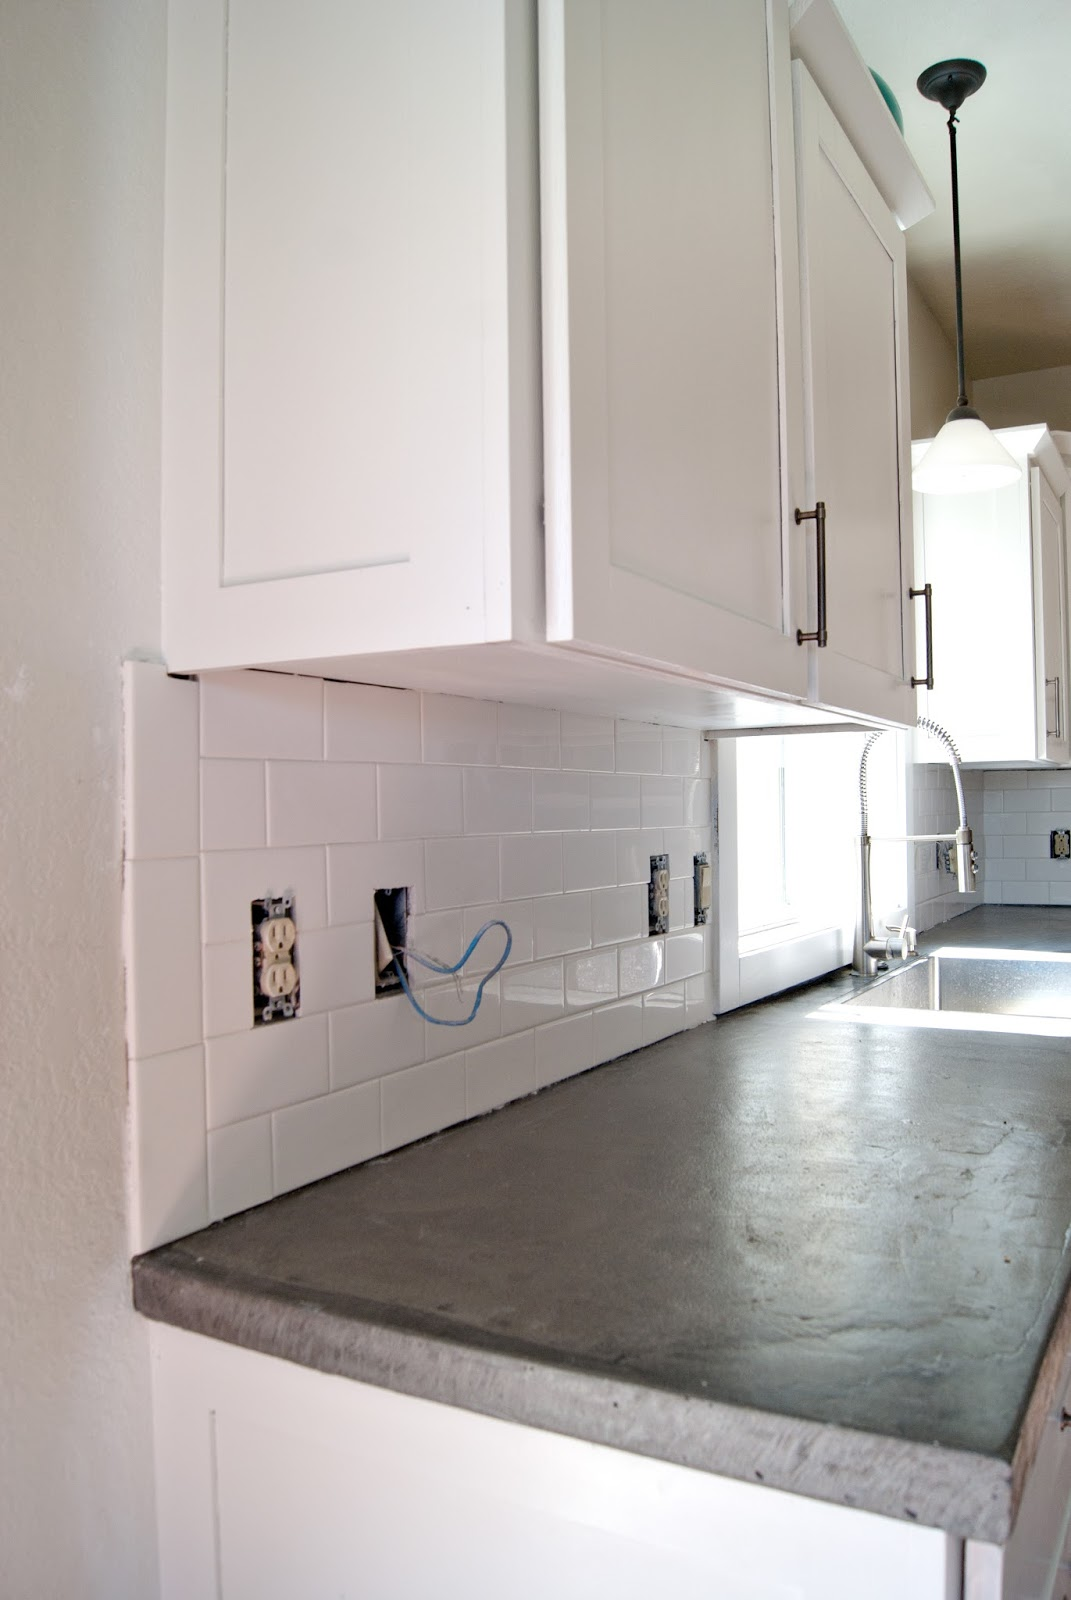 Subway Tile Installation + Tips On Grouting With Fusion